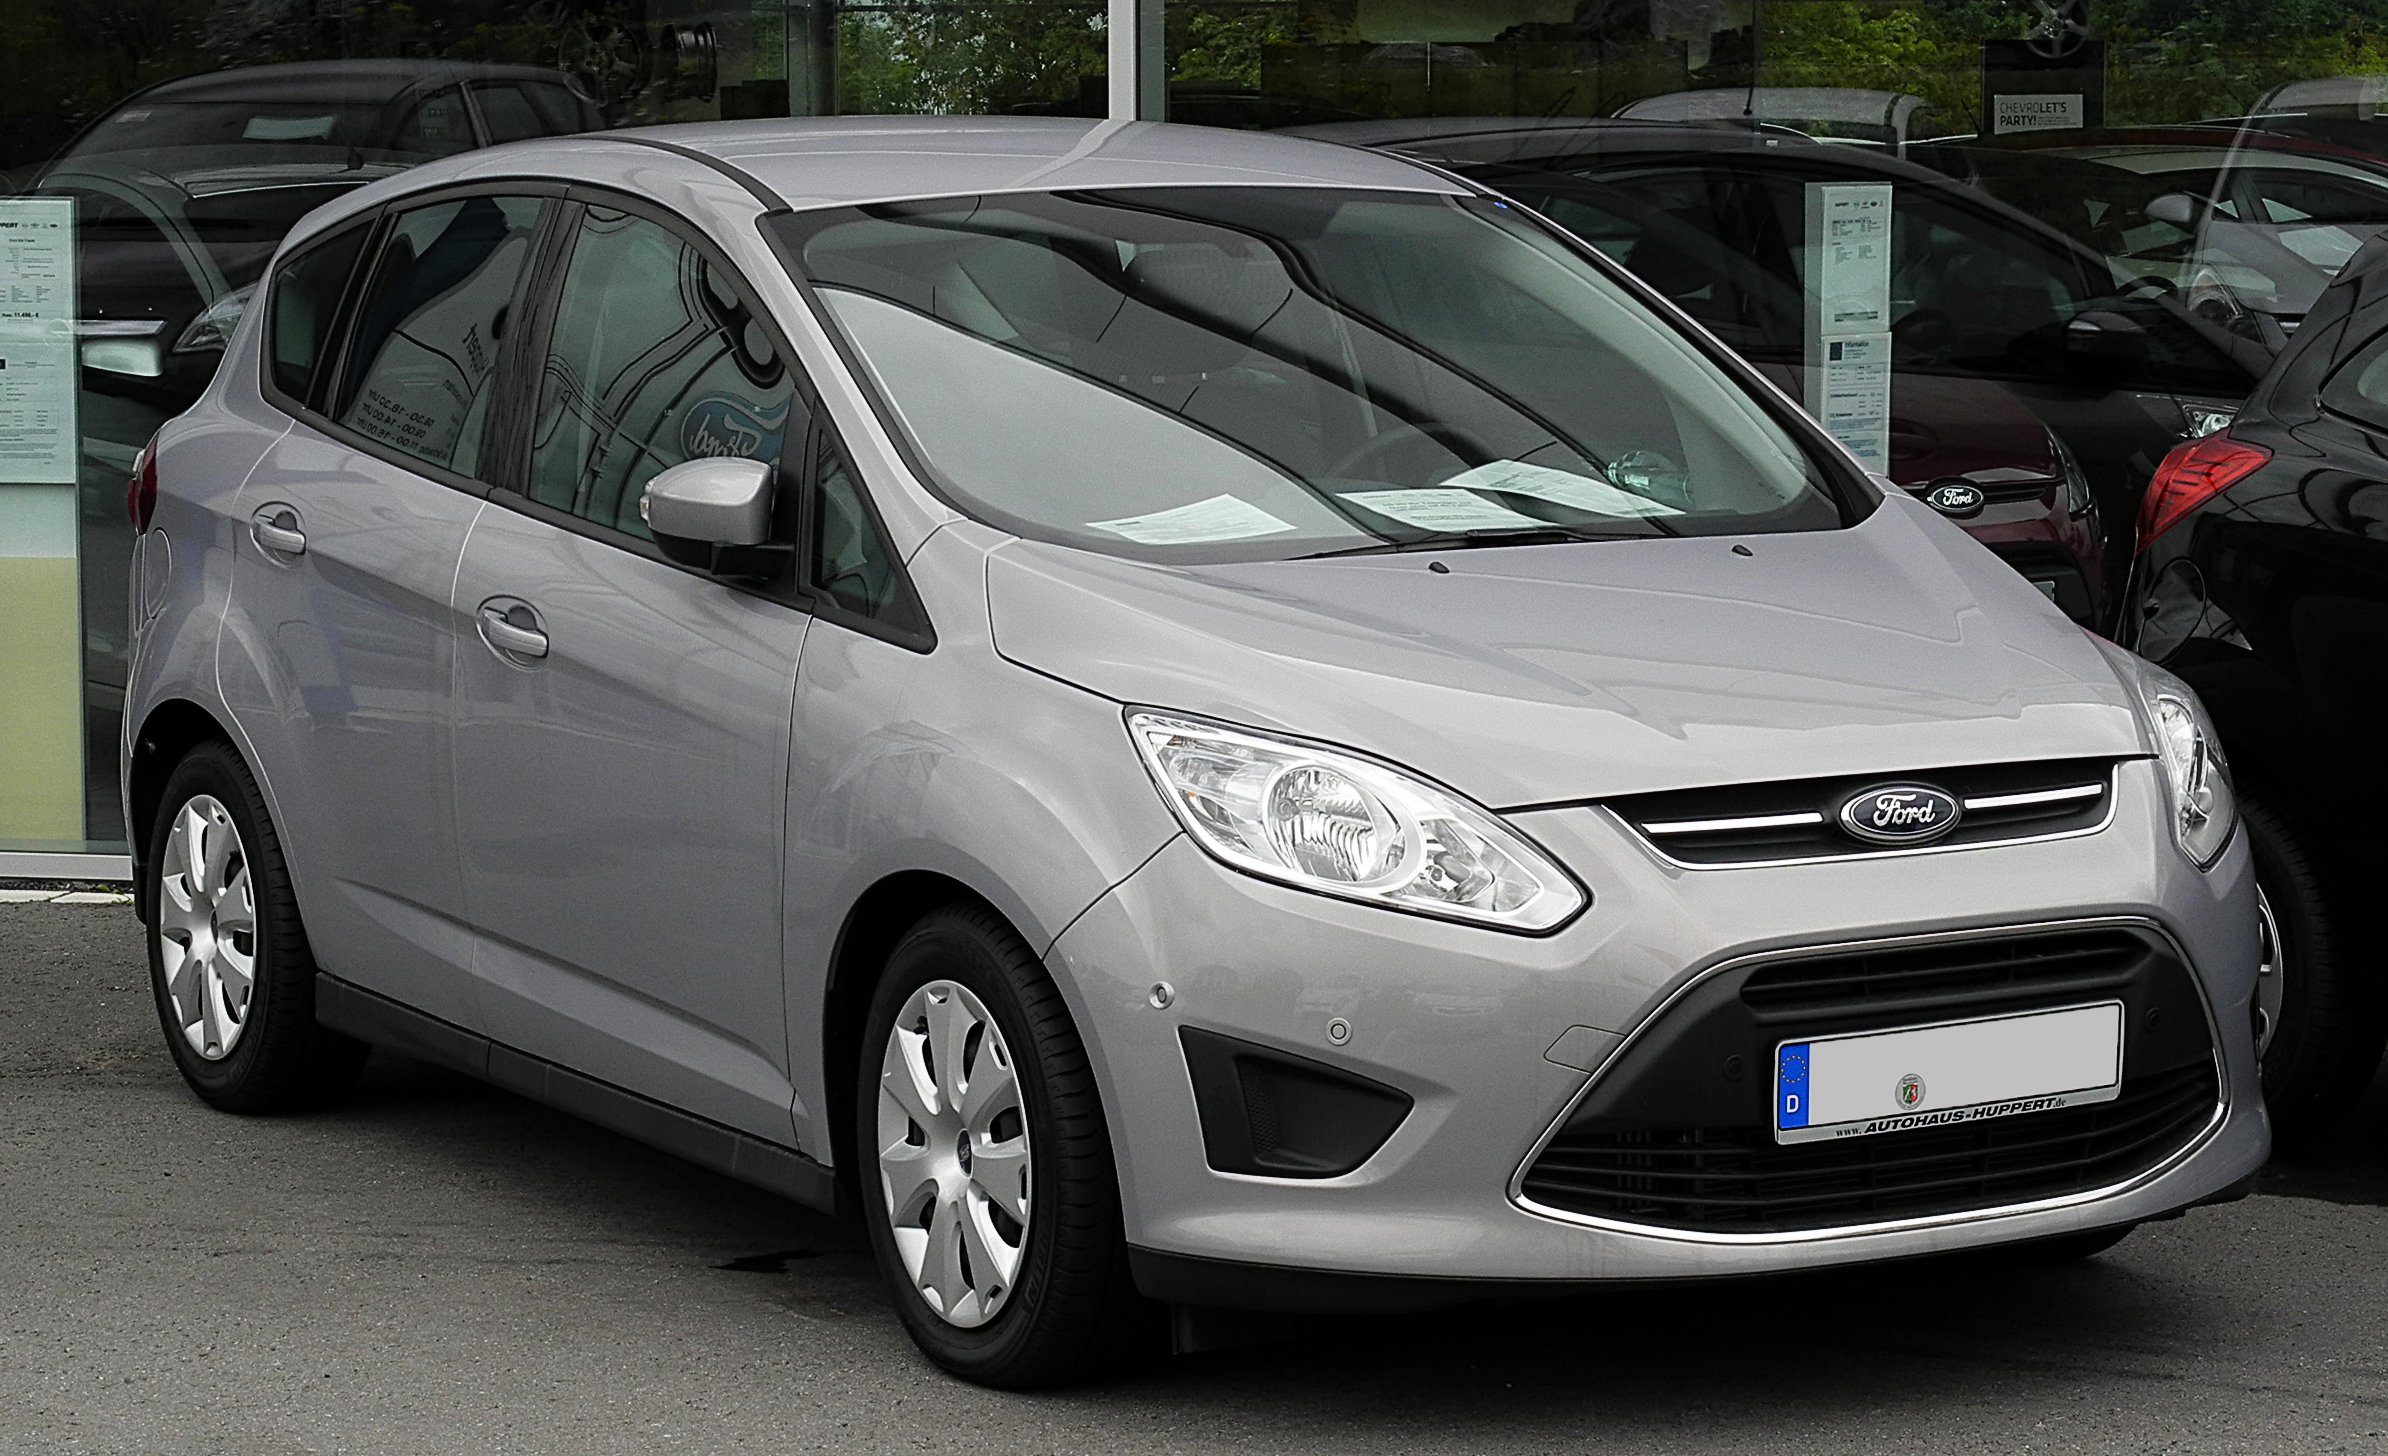 ford c max 1 6 photos and comments. Black Bedroom Furniture Sets. Home Design Ideas